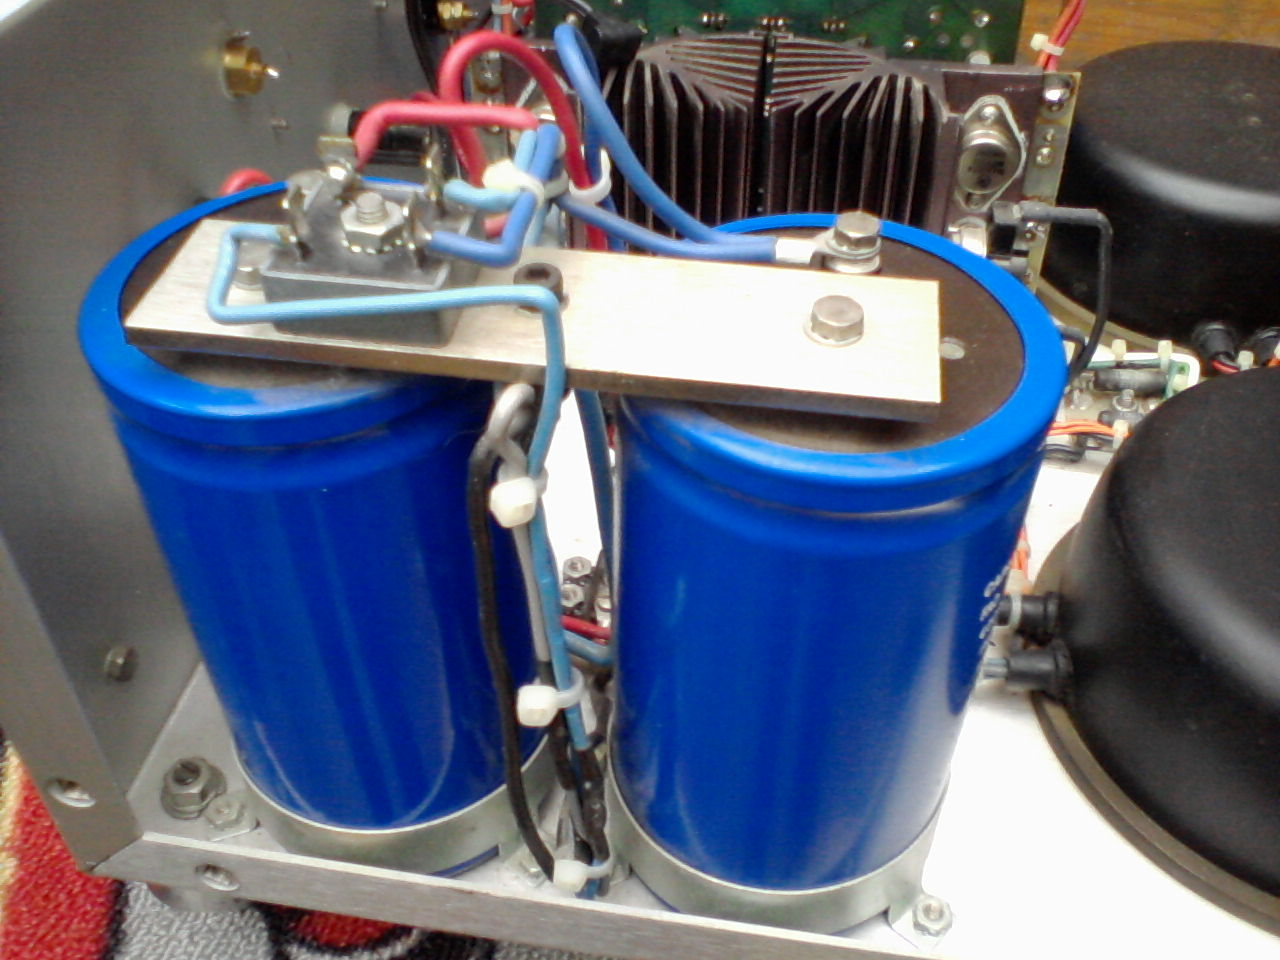 The Bridge Rectifier and PSU Smoothing Capacitors